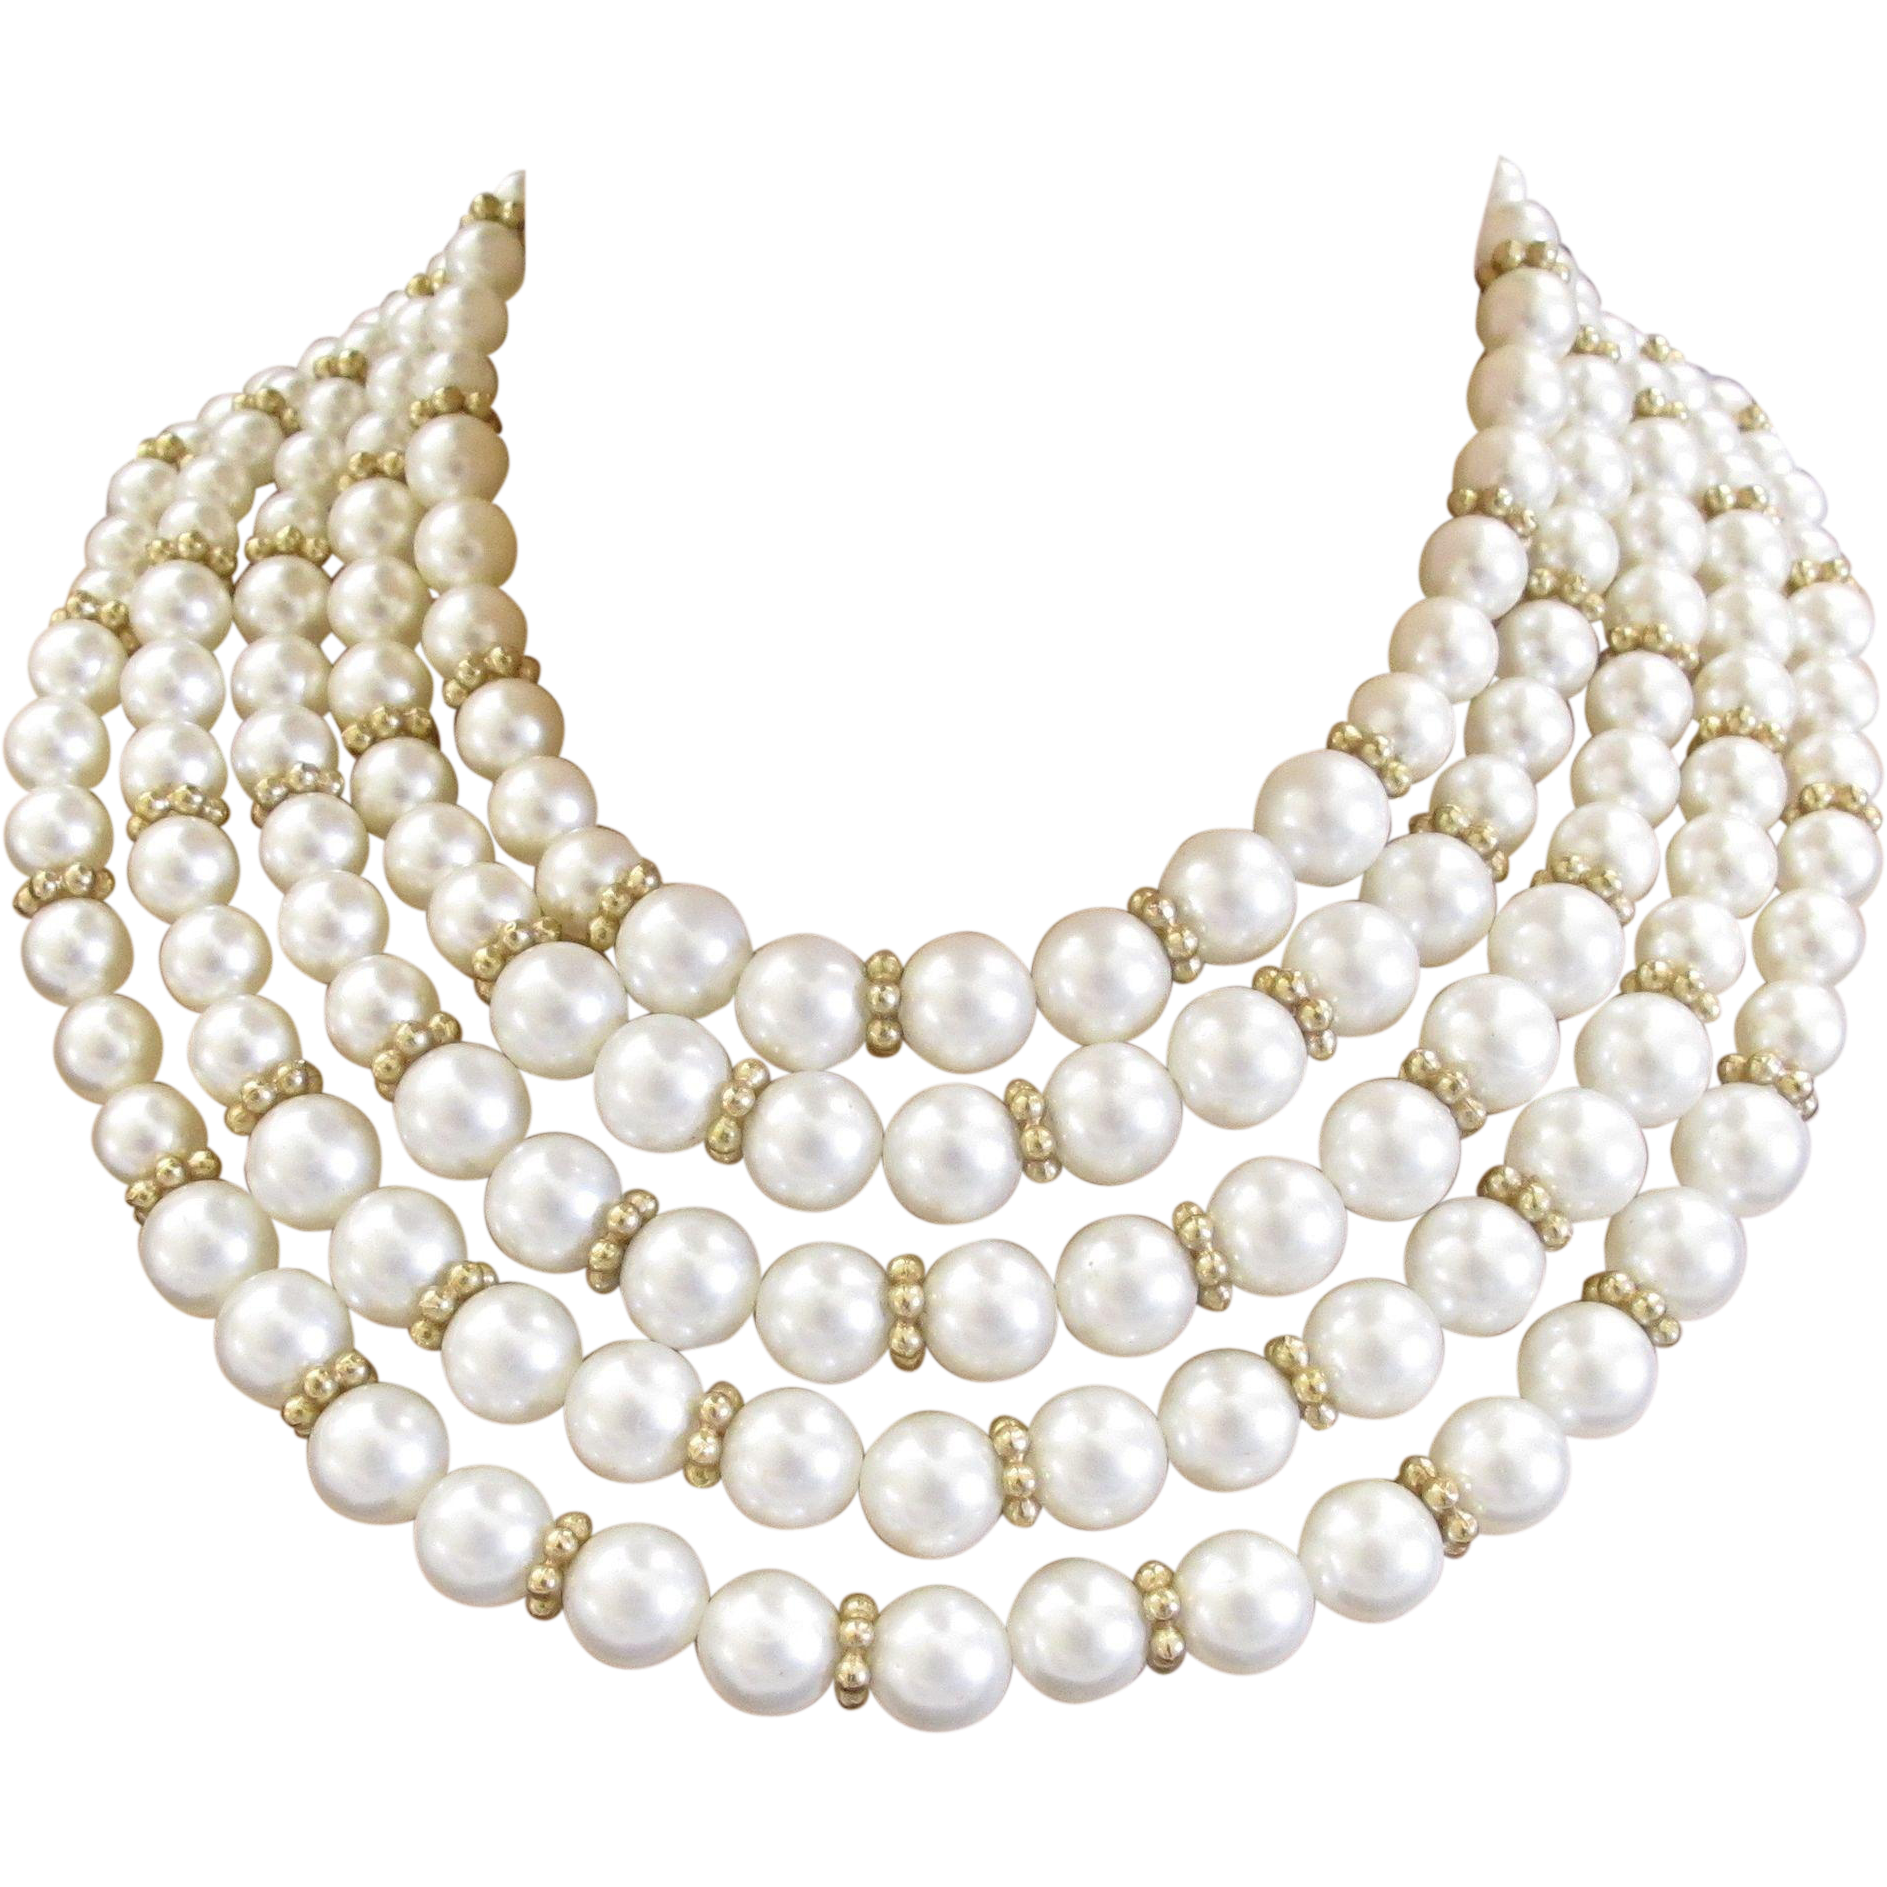 Faux lovely design marvella. Necklace clipart pearl strand